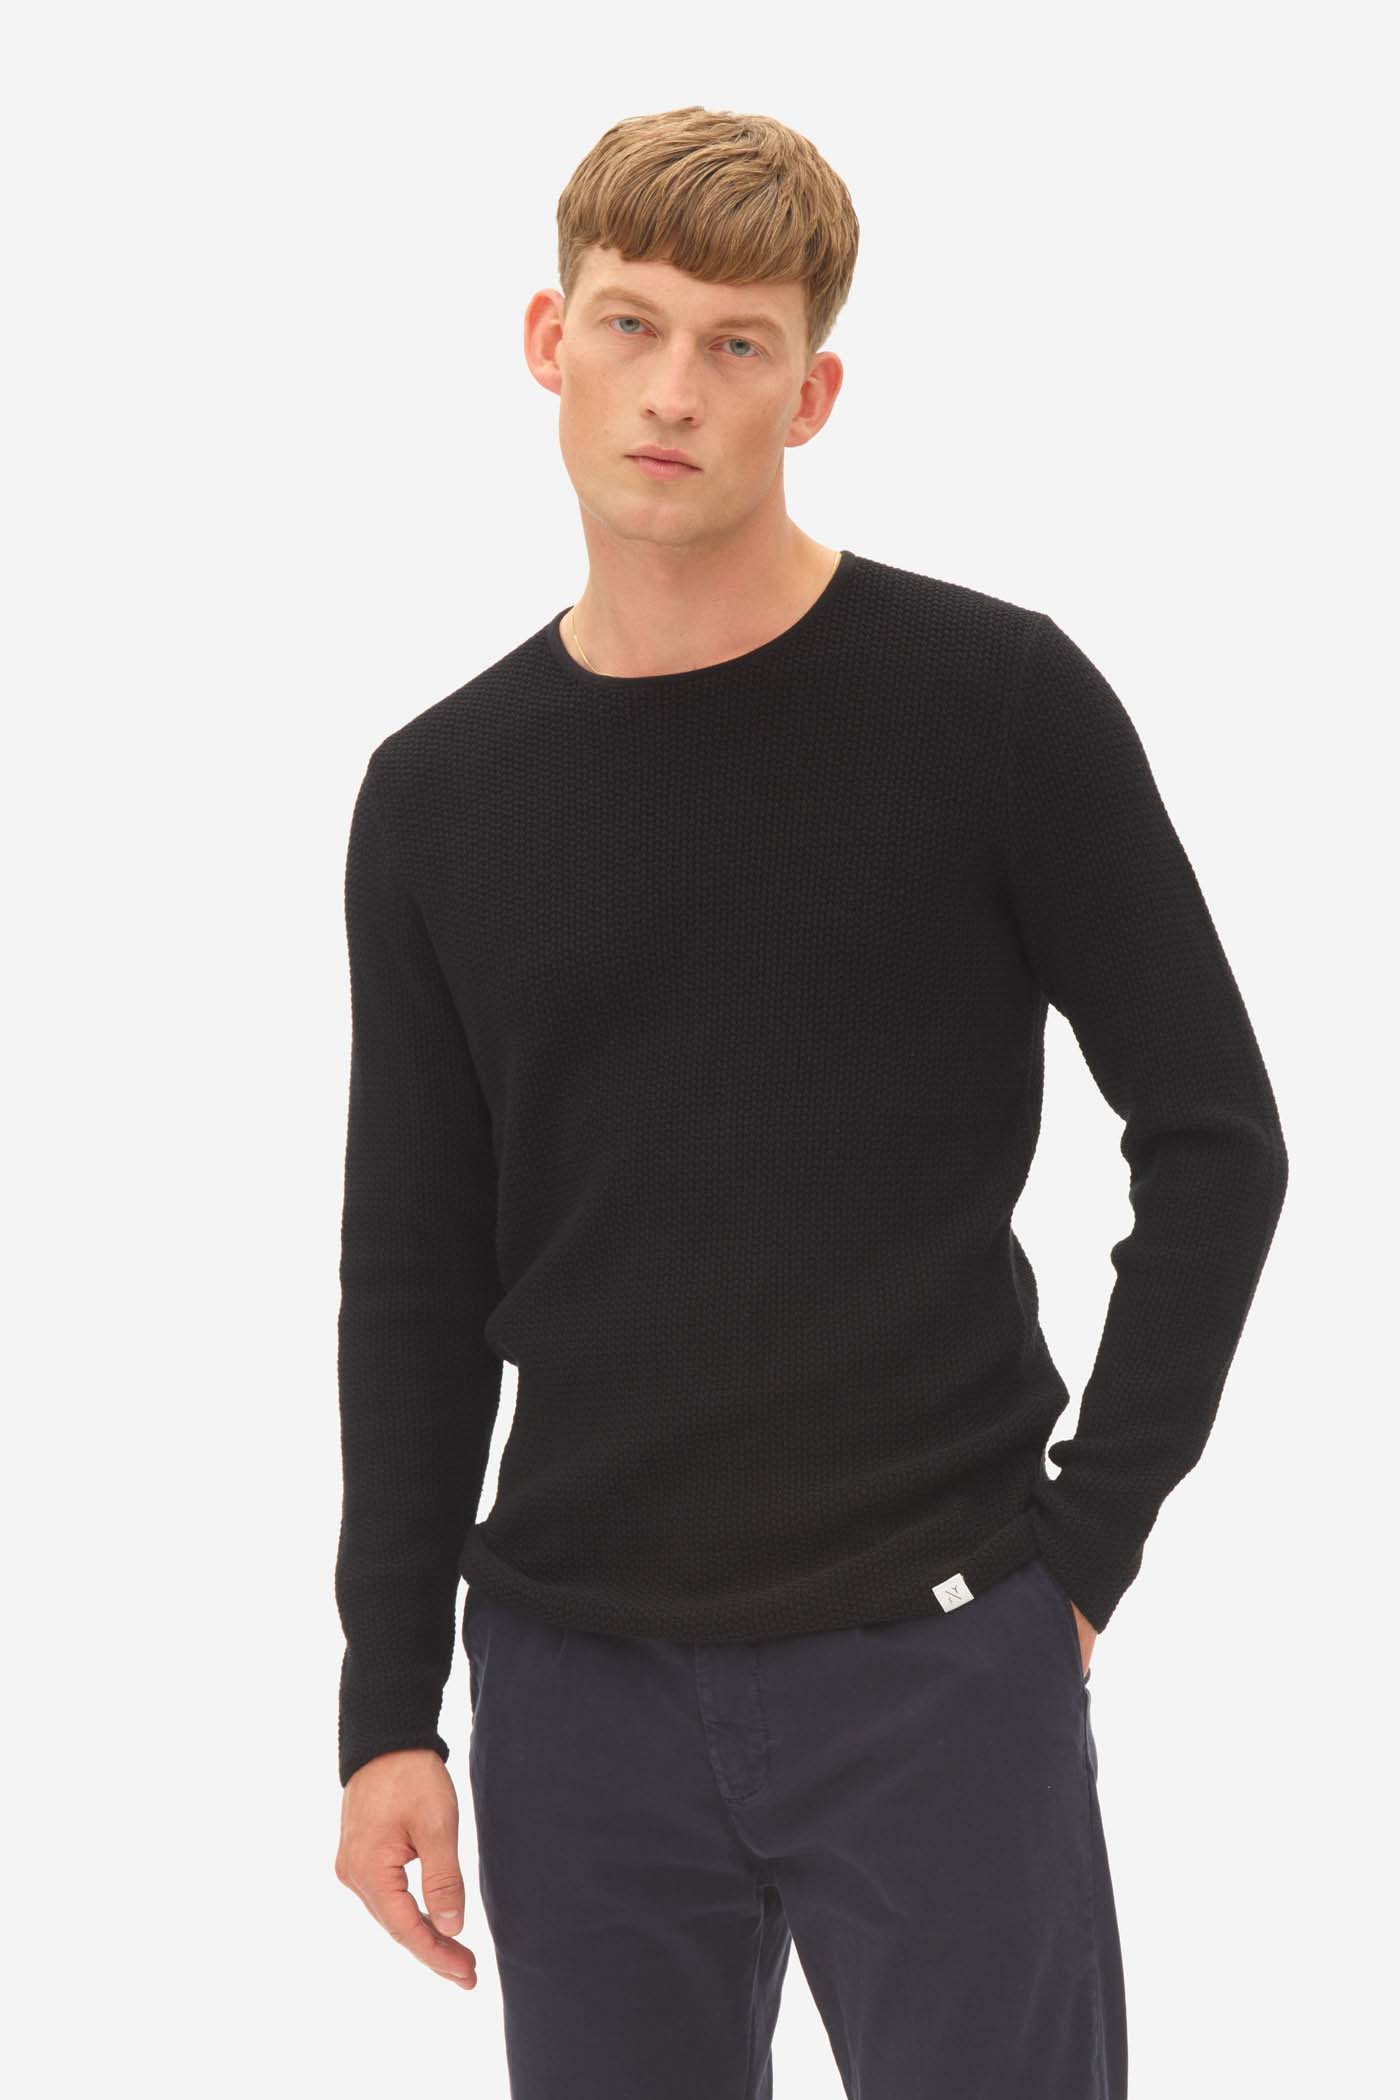 NOS 008 RH structure Pullover